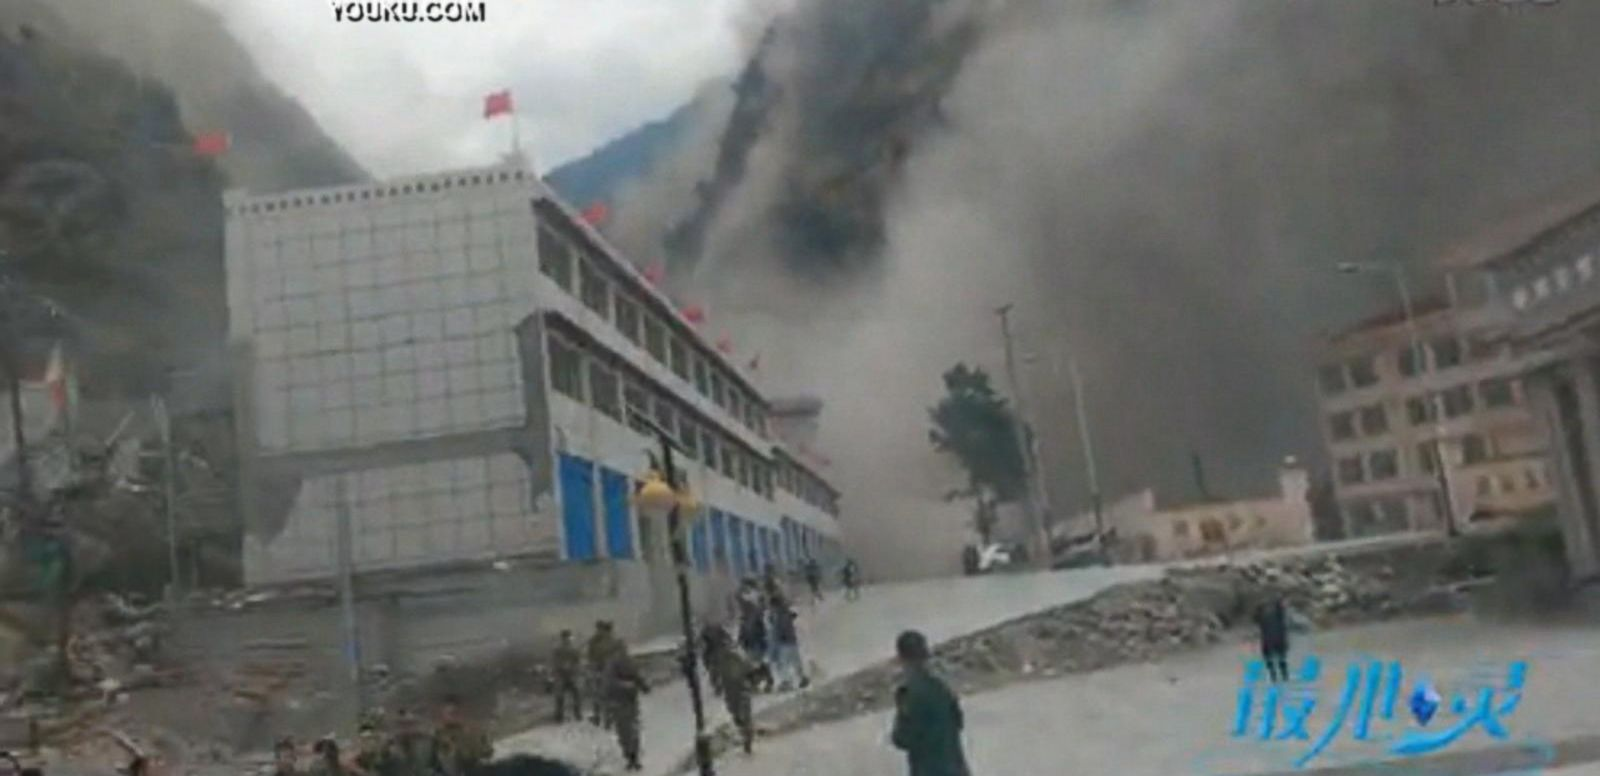 VIDEO: Nepal Rescue Efforts Race Against Time to Save Lives